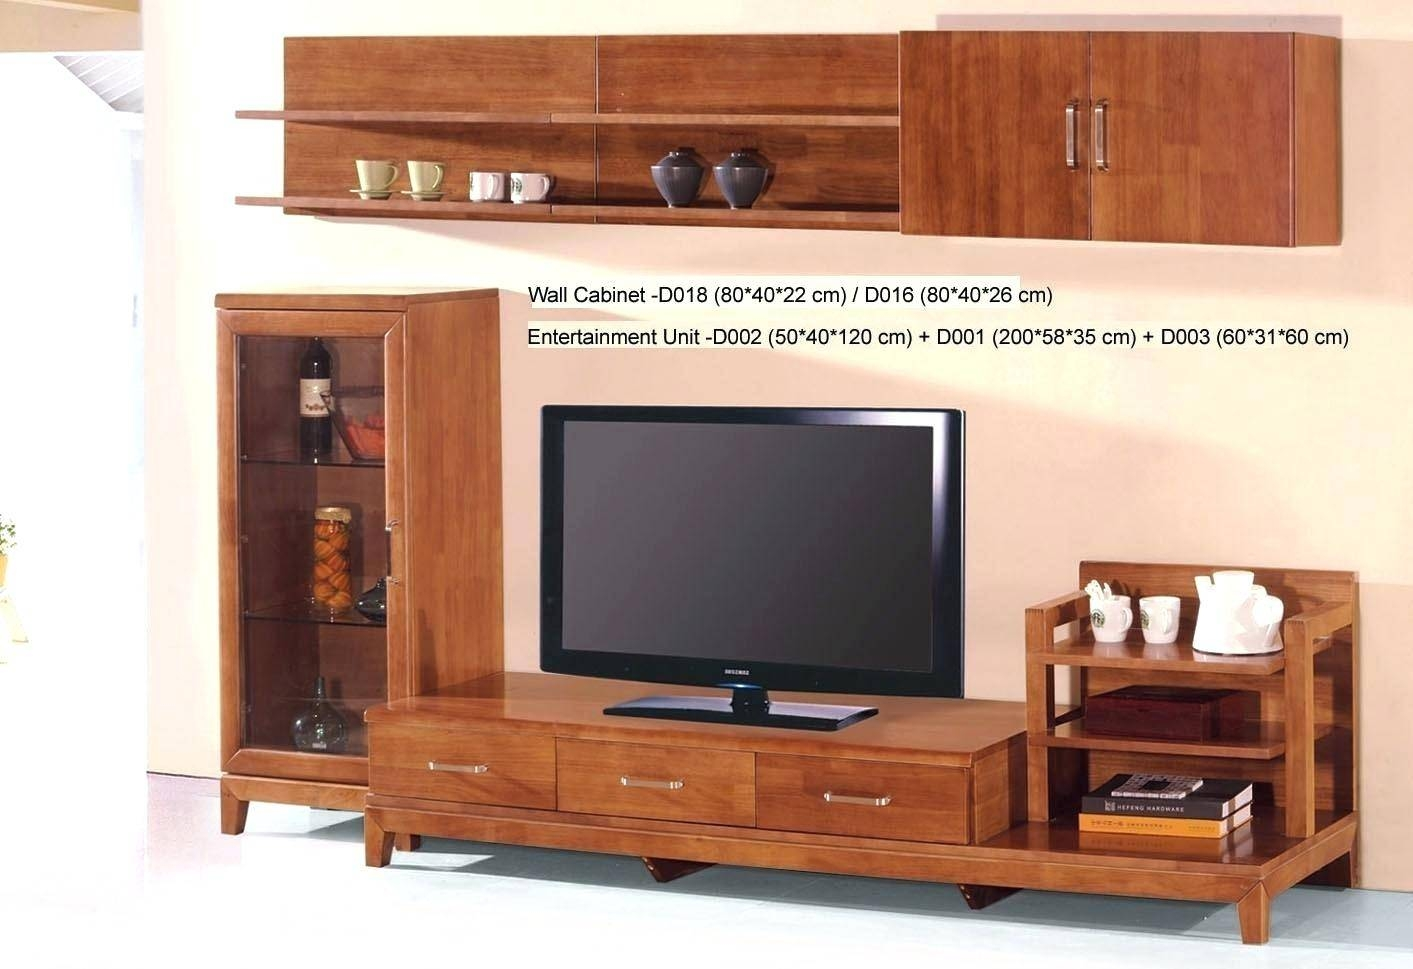 Tv Stand : Bright Country Style Tv Stand Unit Idea In Honey Oak Within Honey Oak Tv Stands (View 4 of 15)